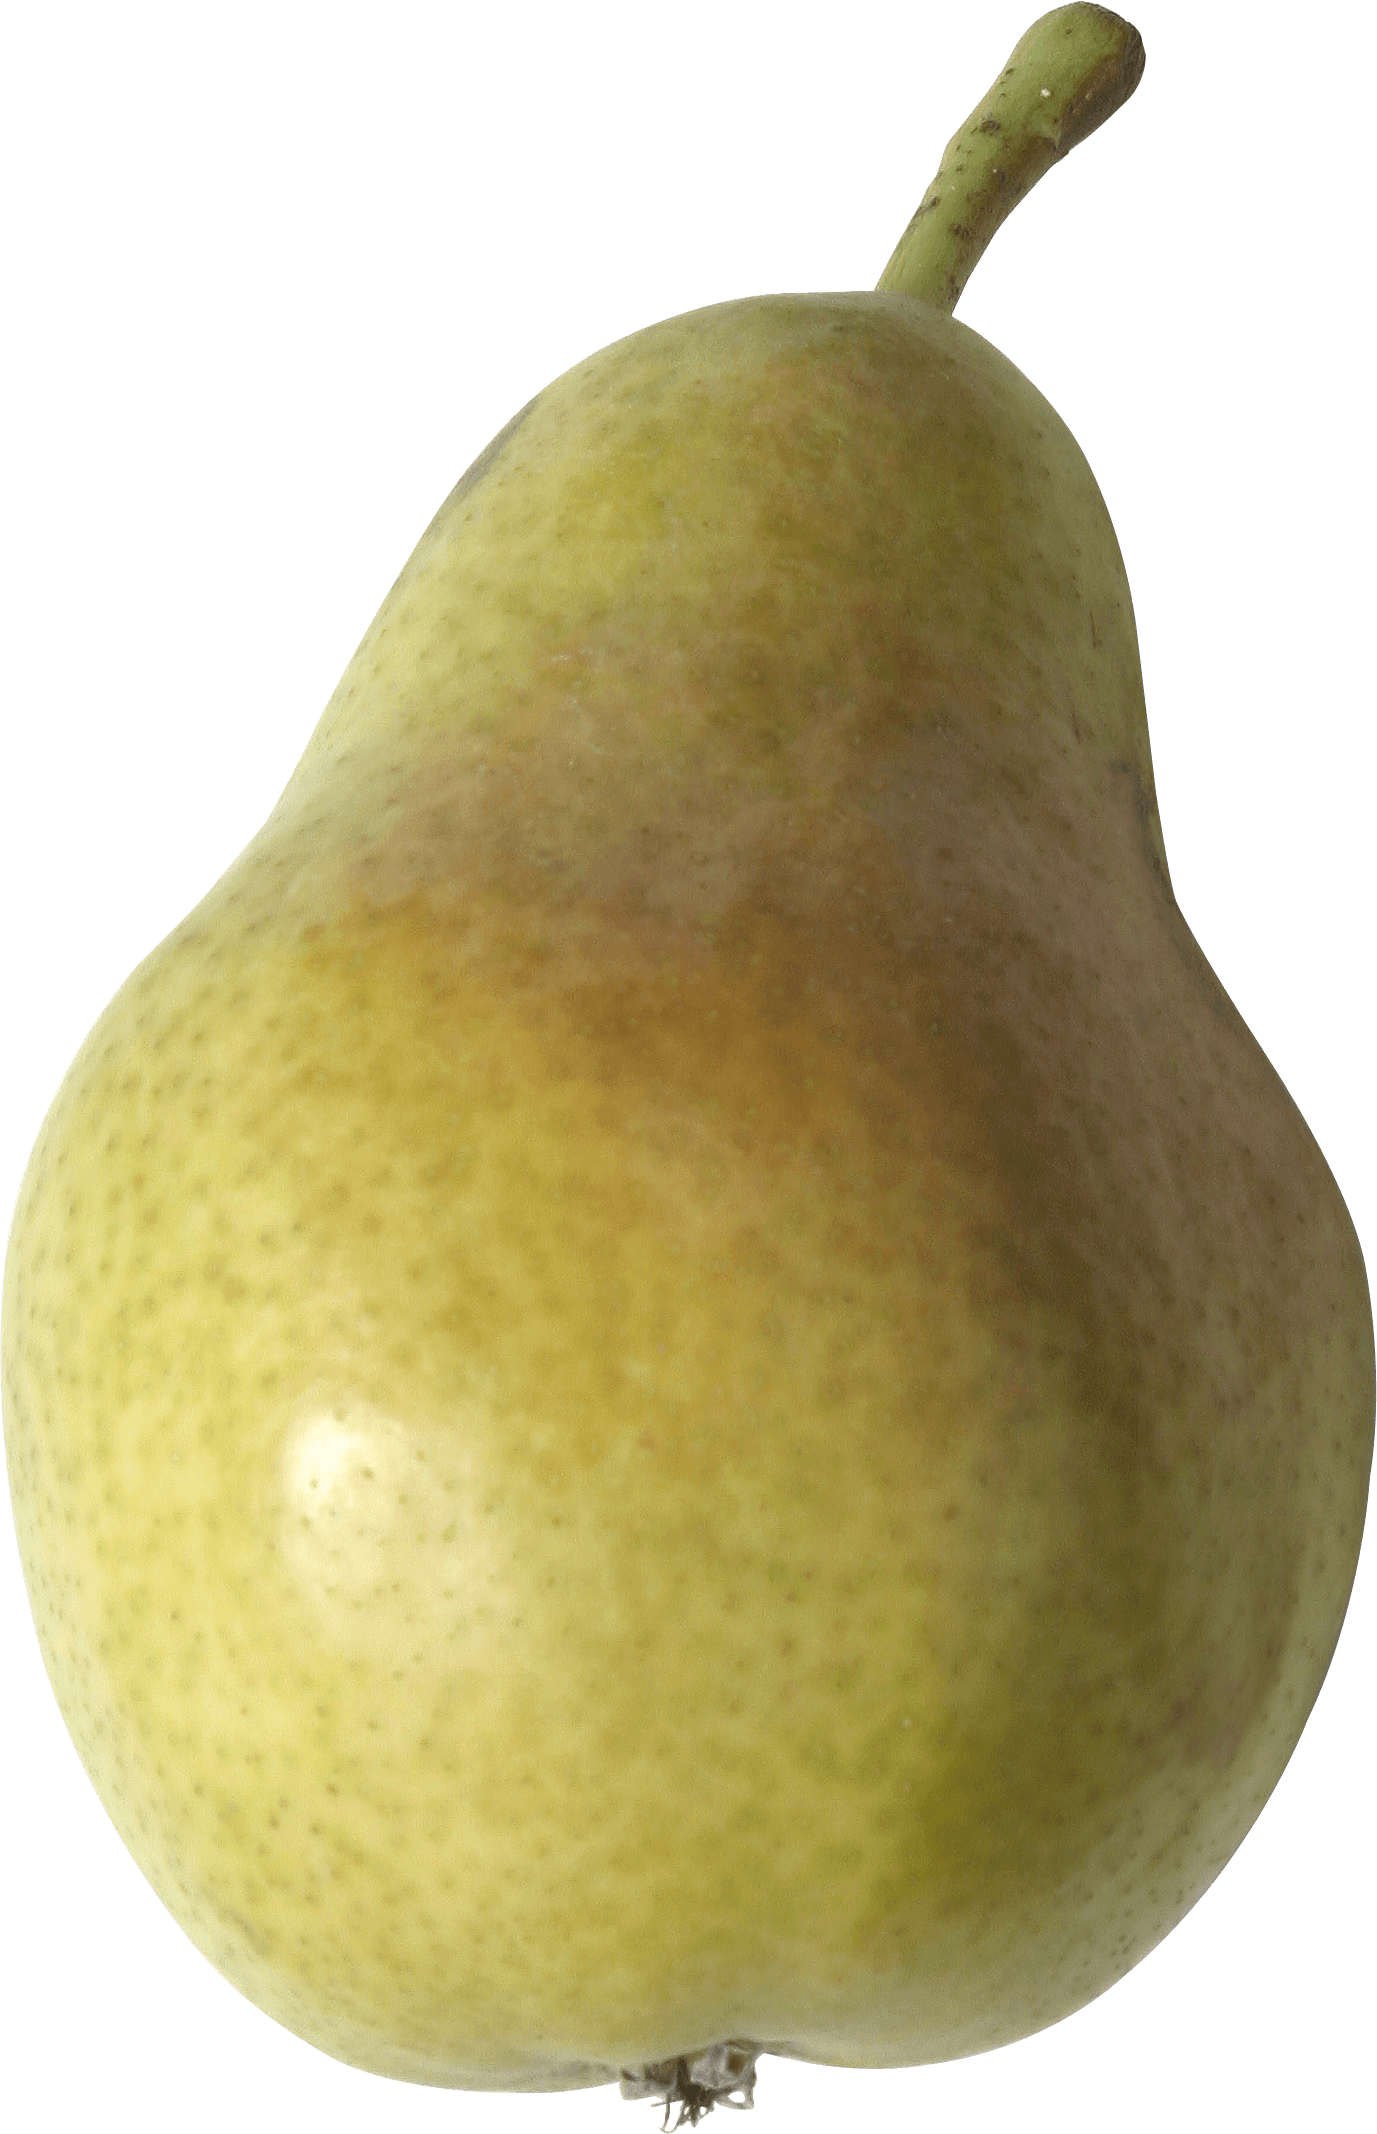 Pear Png Image PNG Image